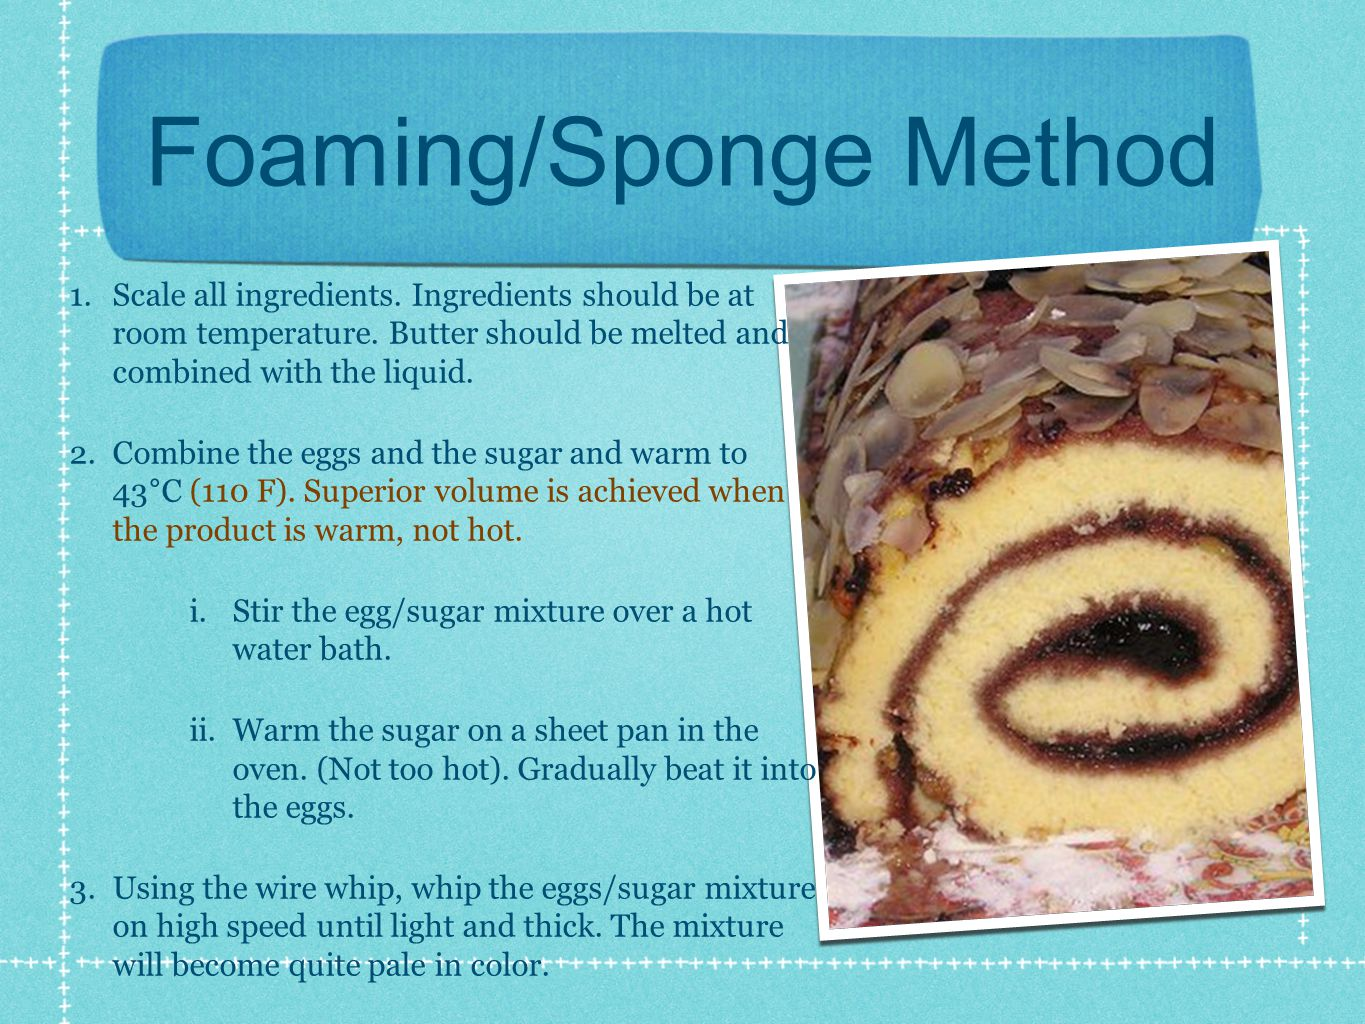 The cake structure is fragile - Proper baking conditions are essential Baking and Cooling